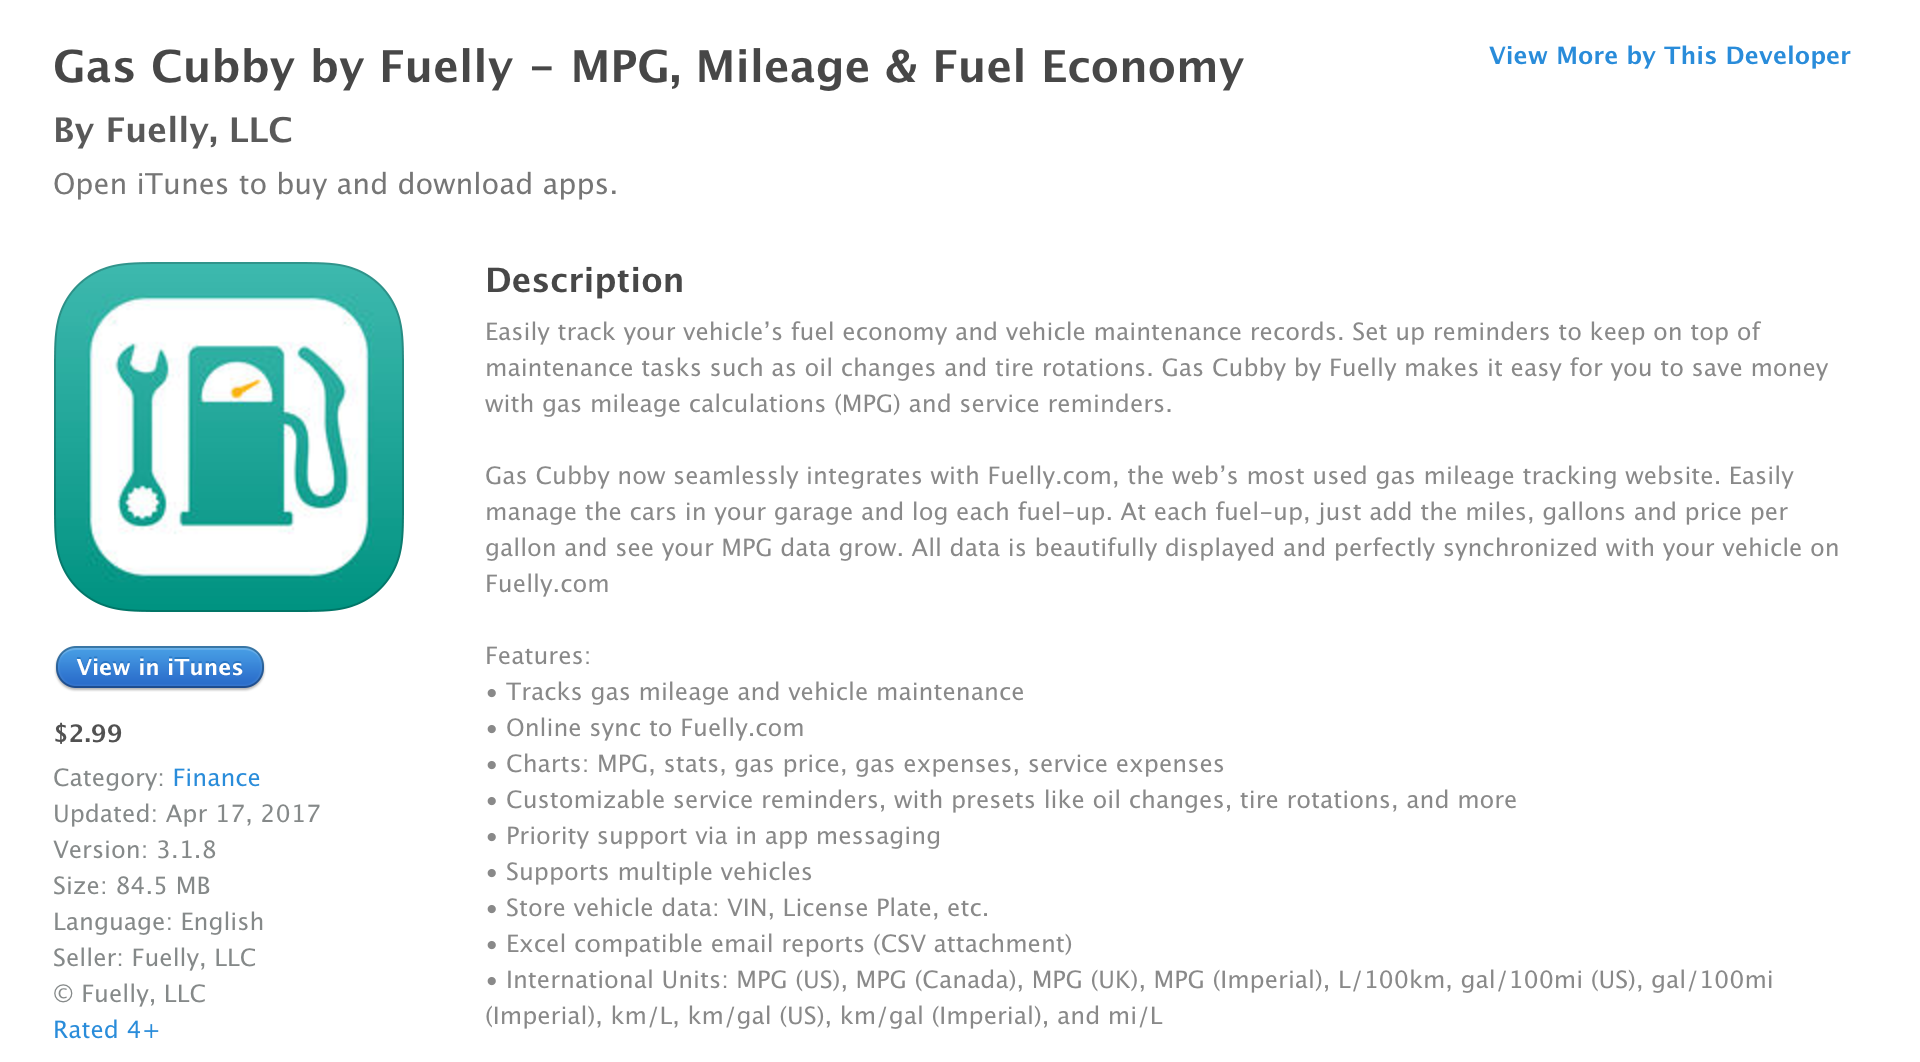 gas cubby by fuelly for ios helps take care of your car 3 50 off